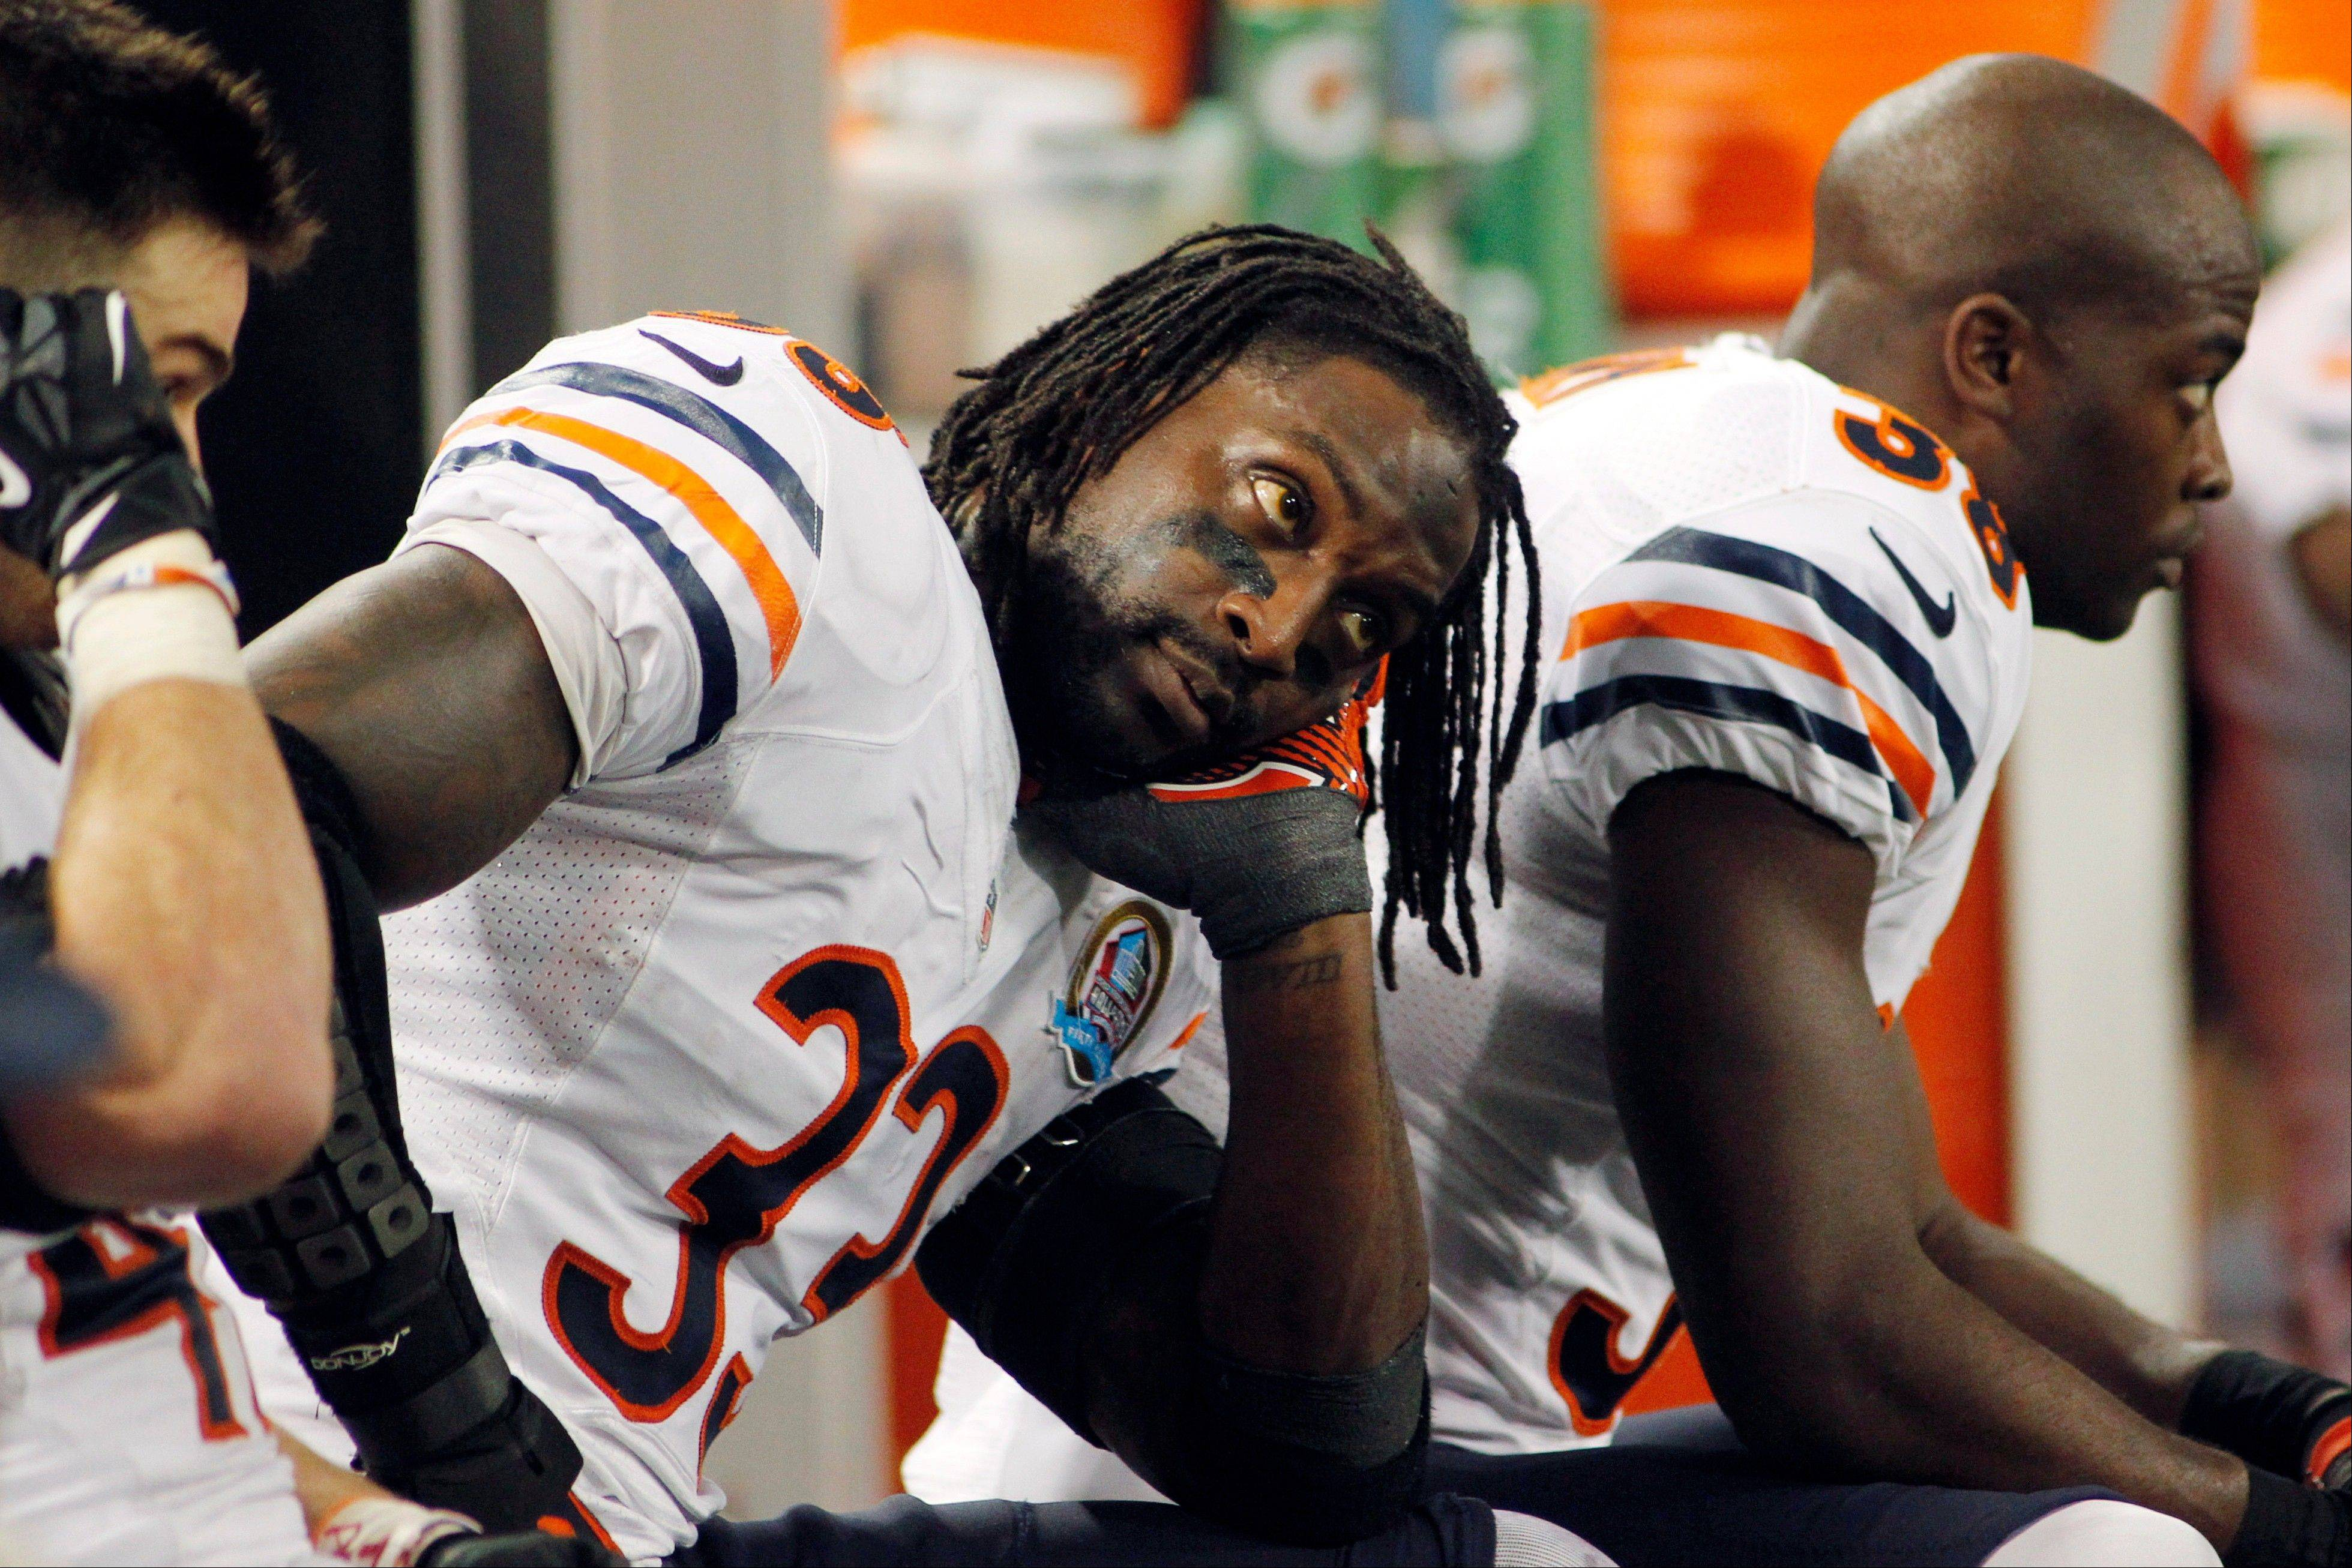 Bears cornerback Charles Tillman sits on the bench Sunday during the second half against the Minnesota Vikingsin Minneapolis. The Vikings won 21-14.